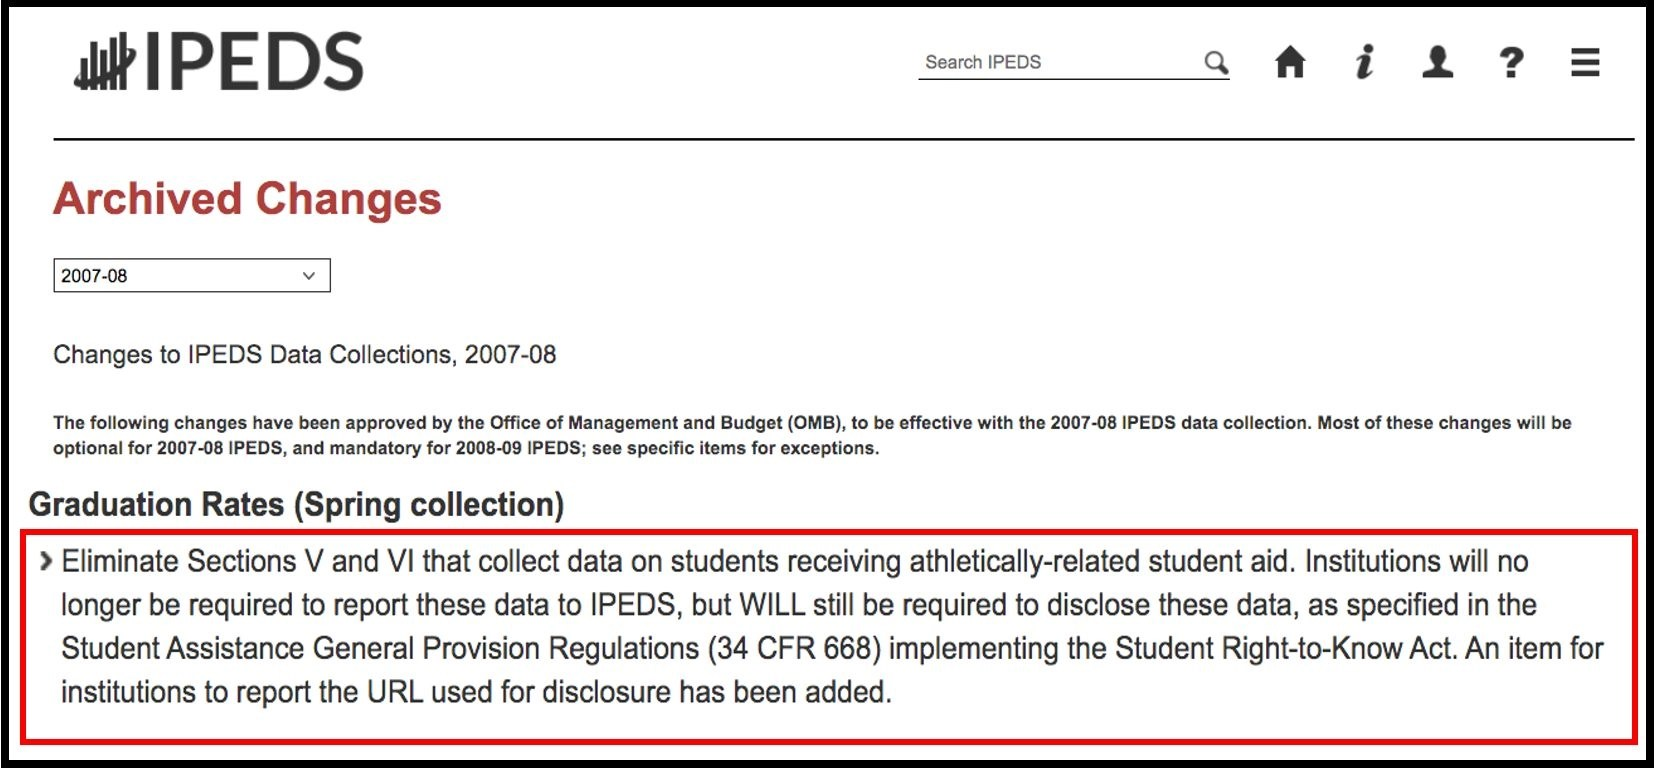 Archived changes image from IPEDS - elimination of reporting for athletically-related student aid